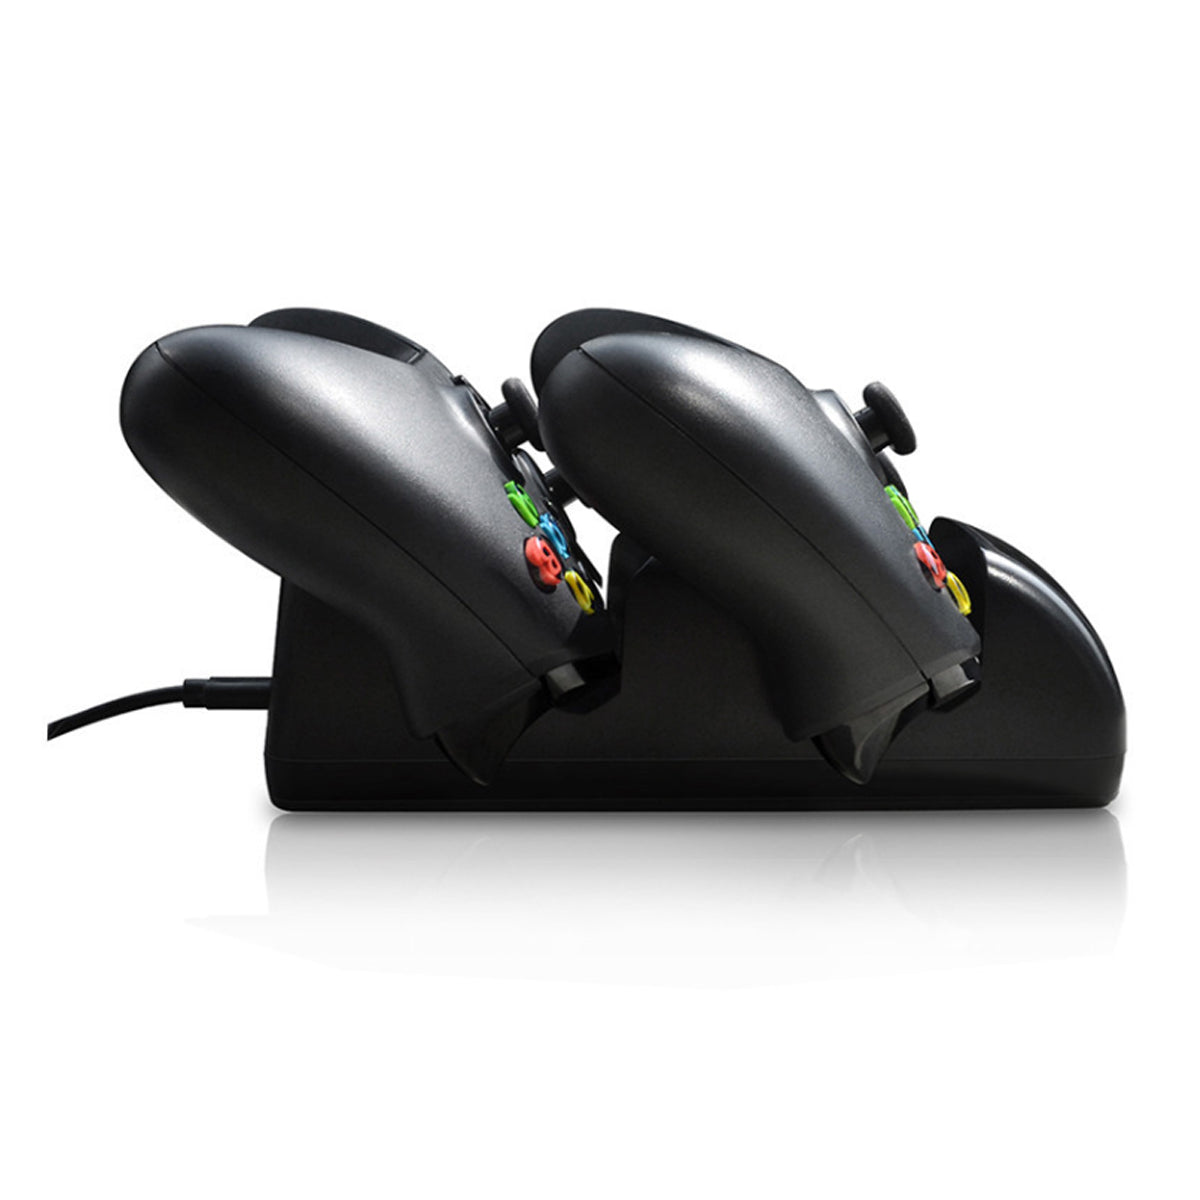 shopify-Play Time Game Charger For XBOX-4